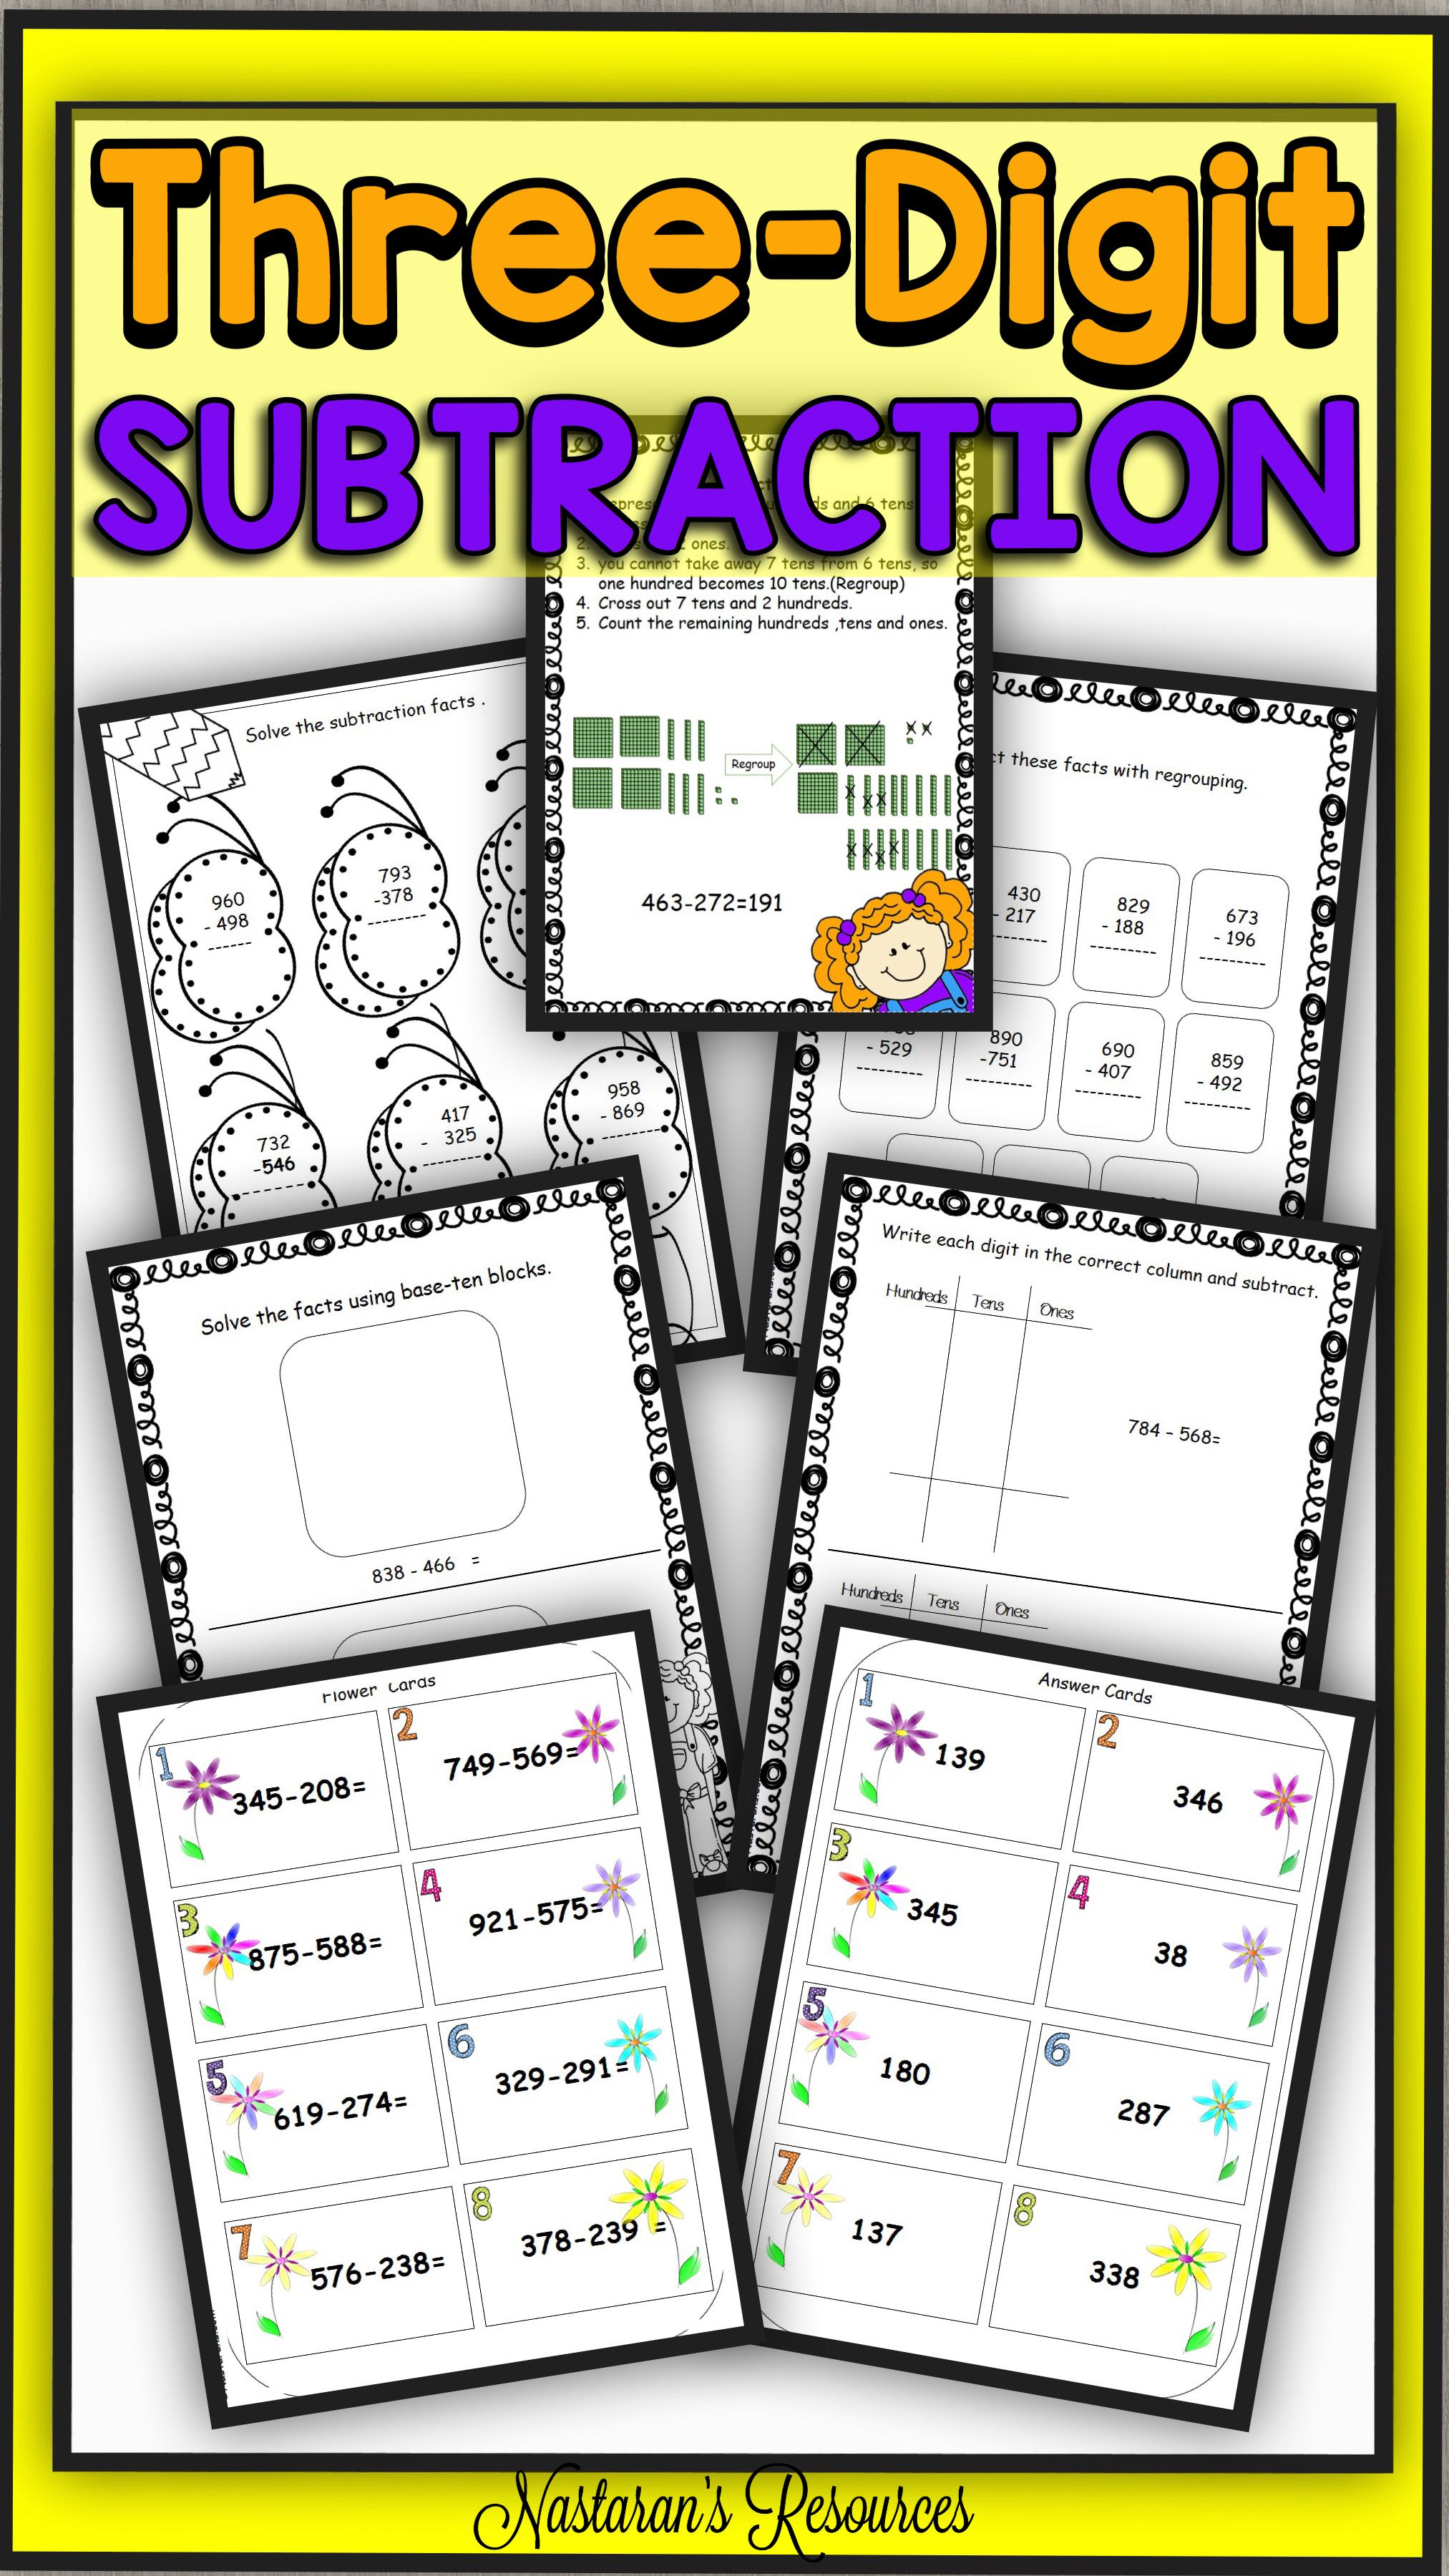 Three Digit Subtraction With Regrouping Worksheets